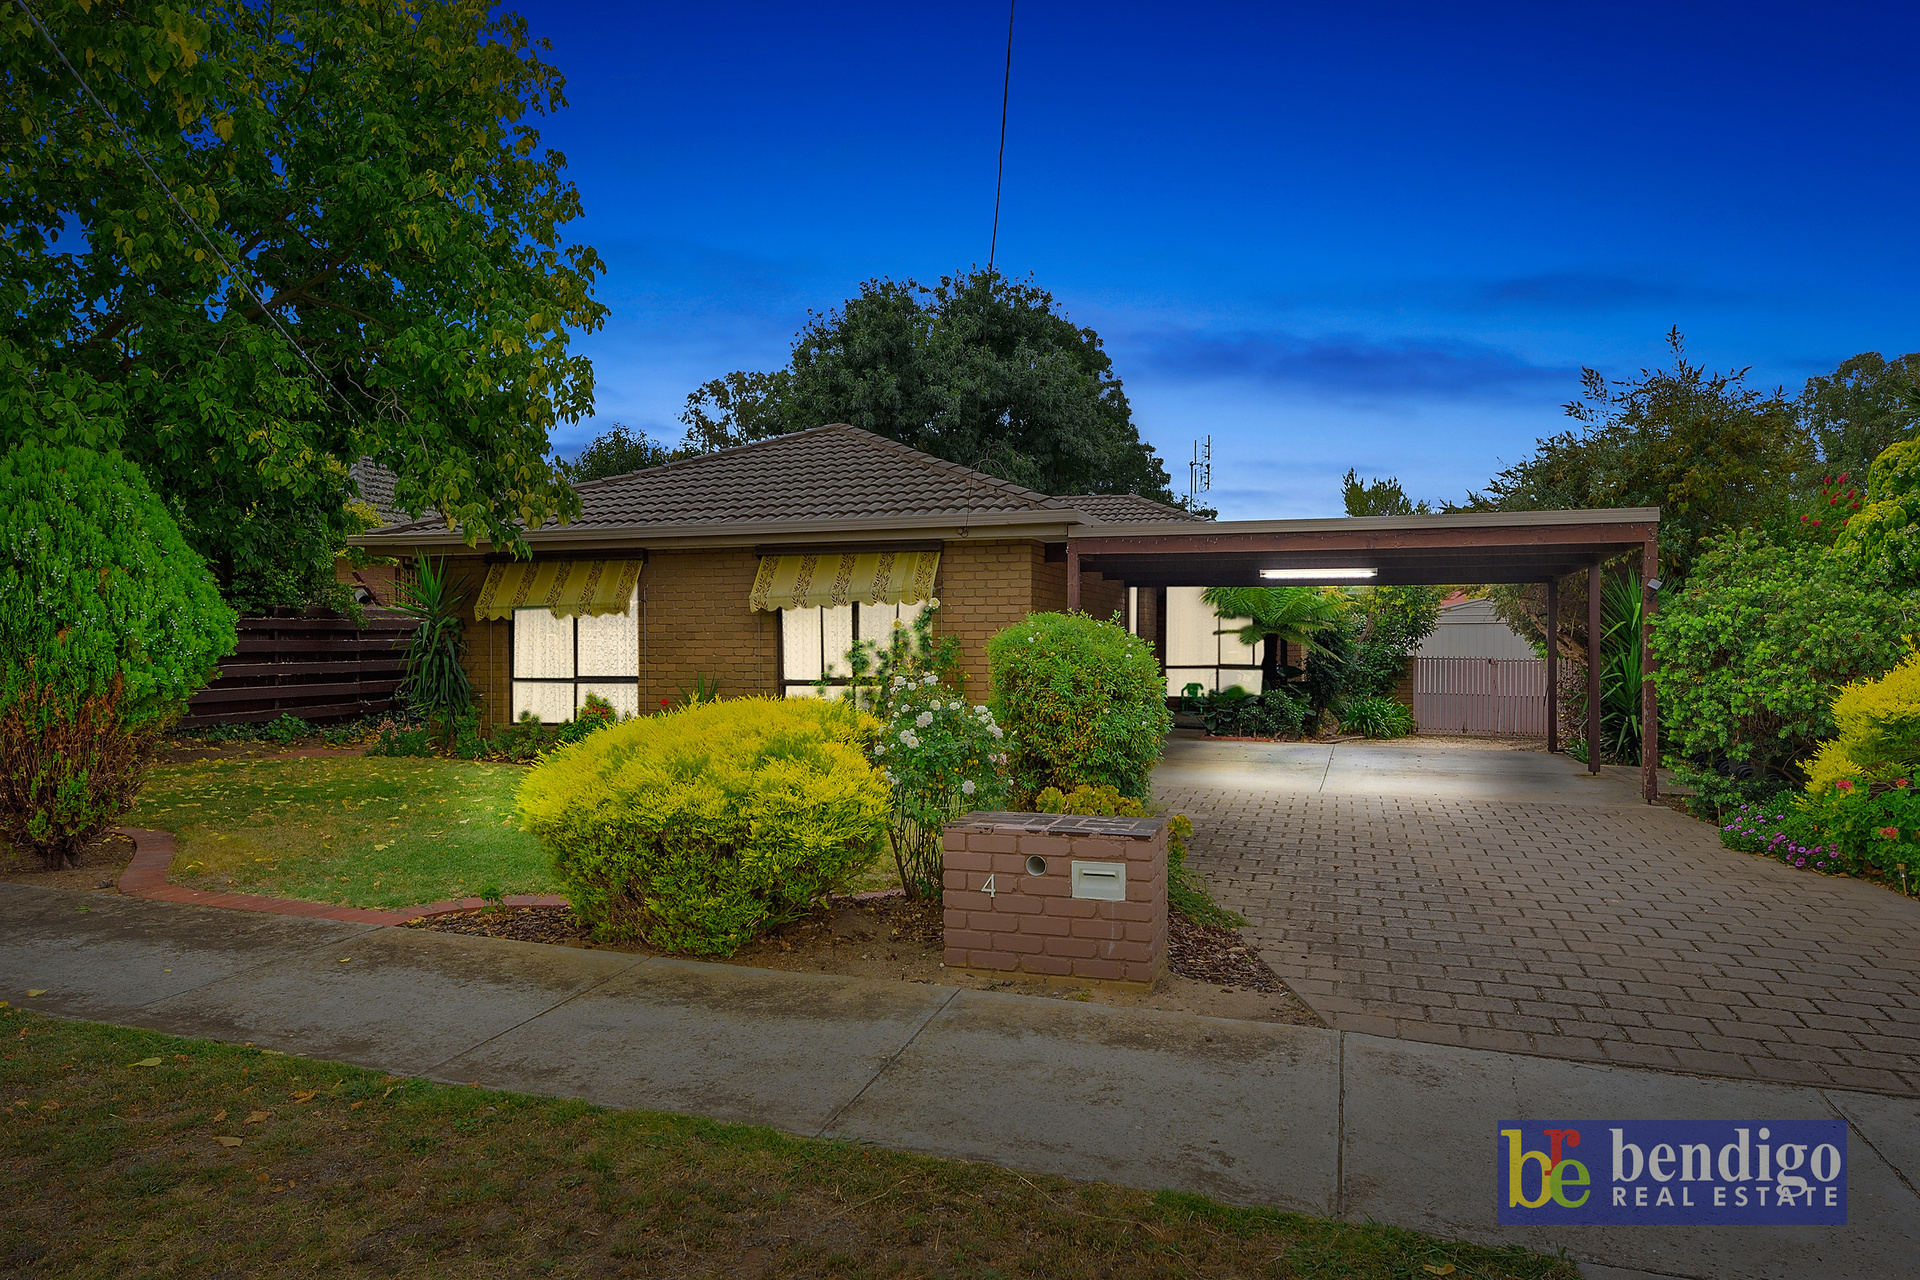 4 Sydenham Avenue North Bendigo